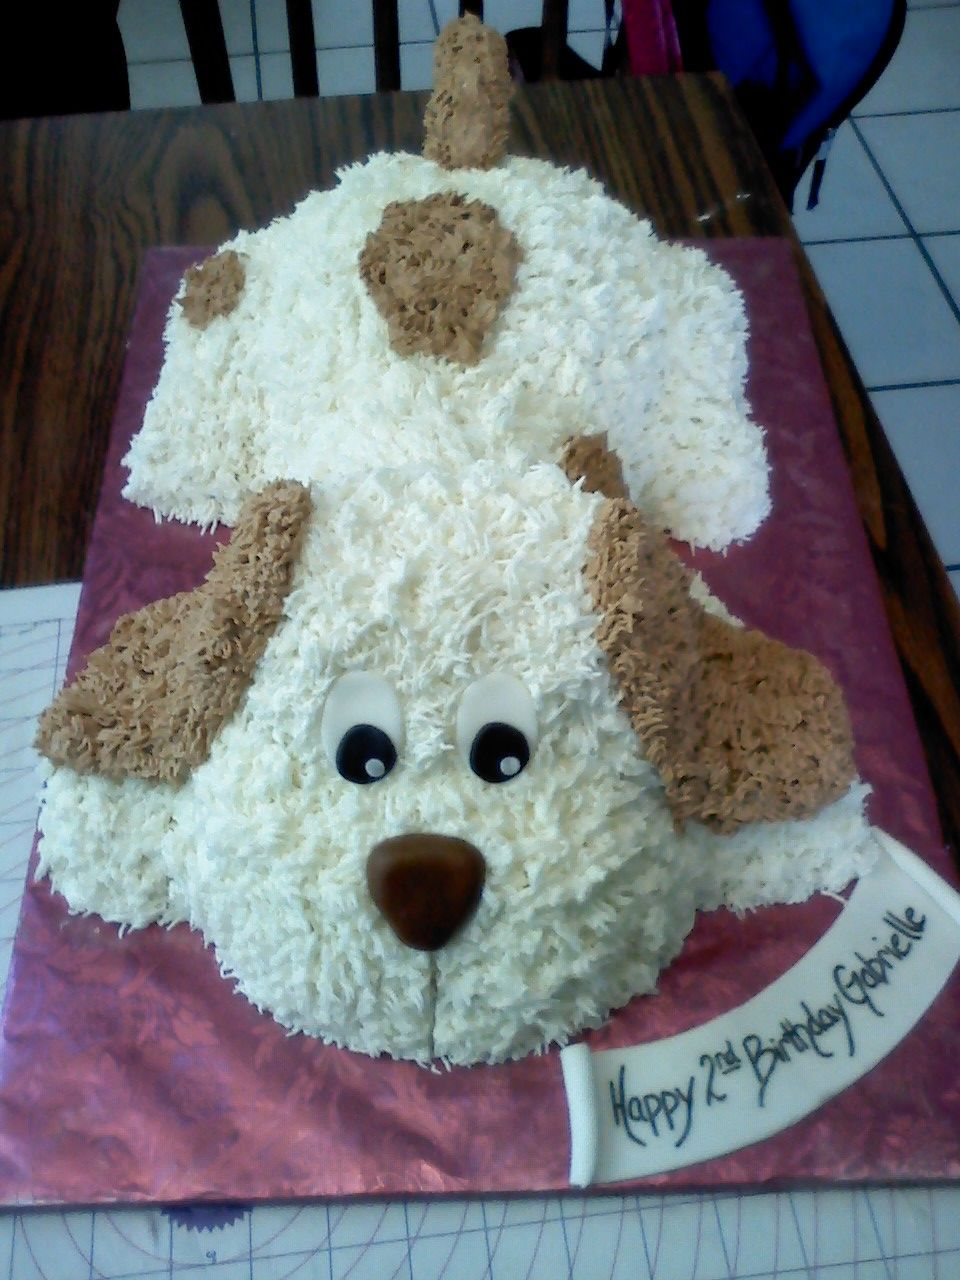 Facebook Nikkiscreativeconfections Puppy Cake Buttercream Piping Stuffed Animal Soft Cute